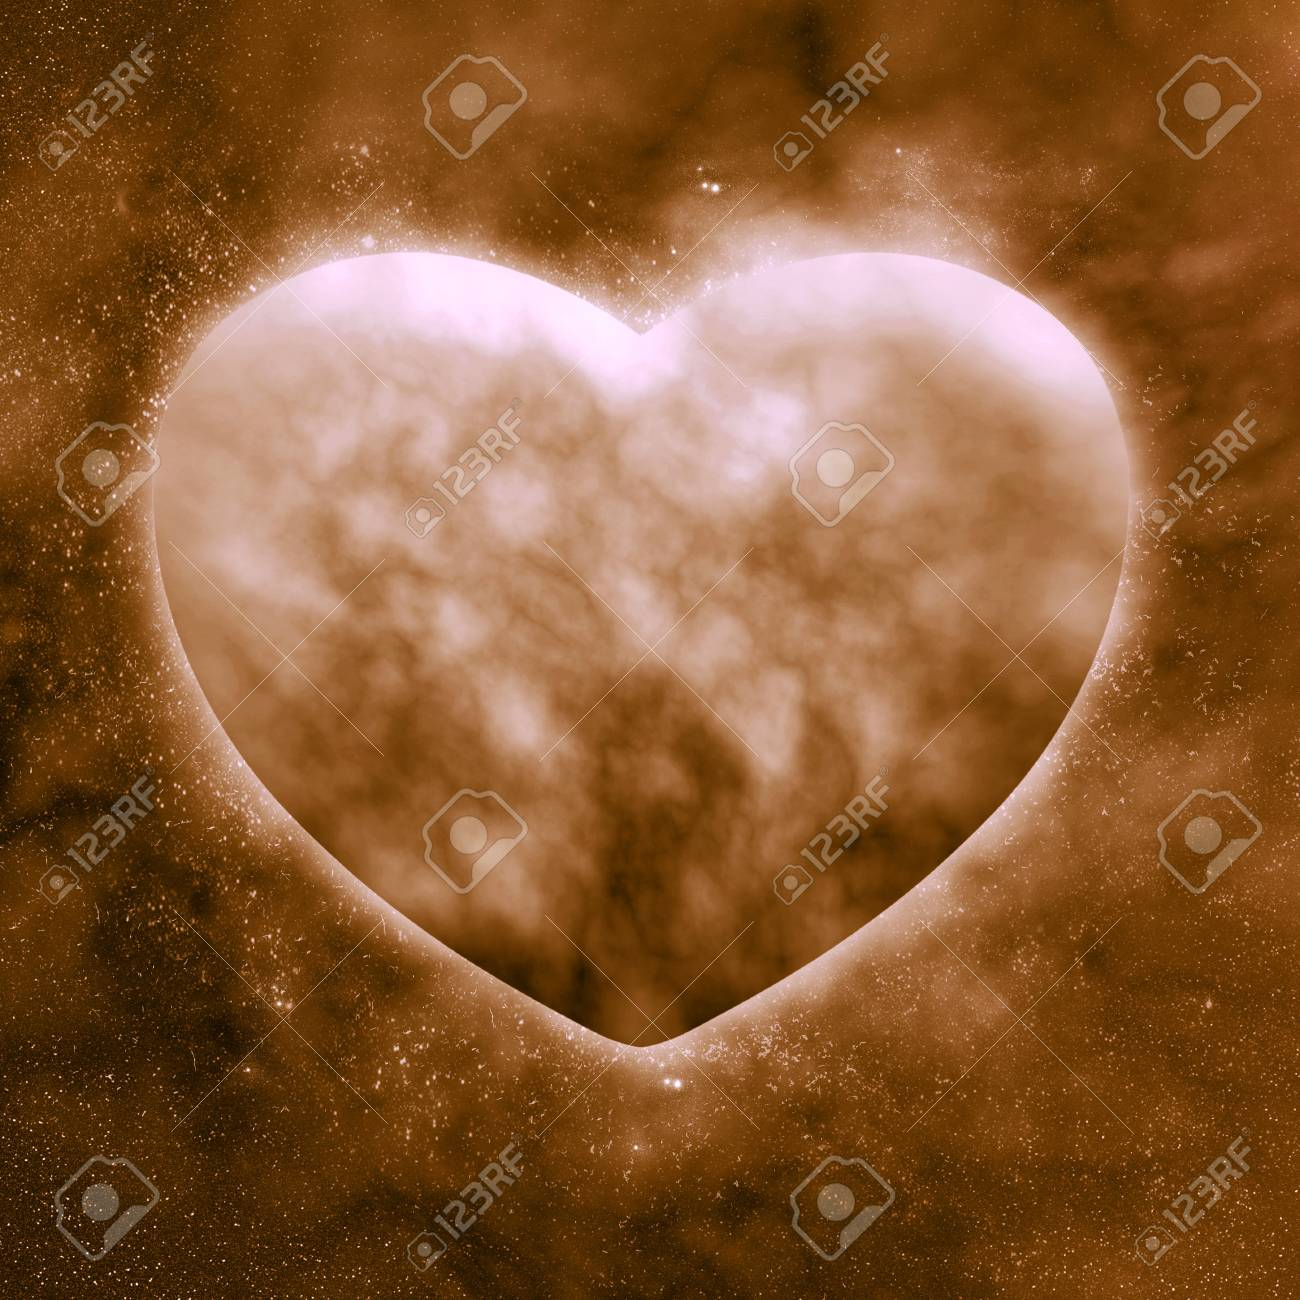 Concept ,Planet of the heart in beautiful space Stock Photo - 12354223